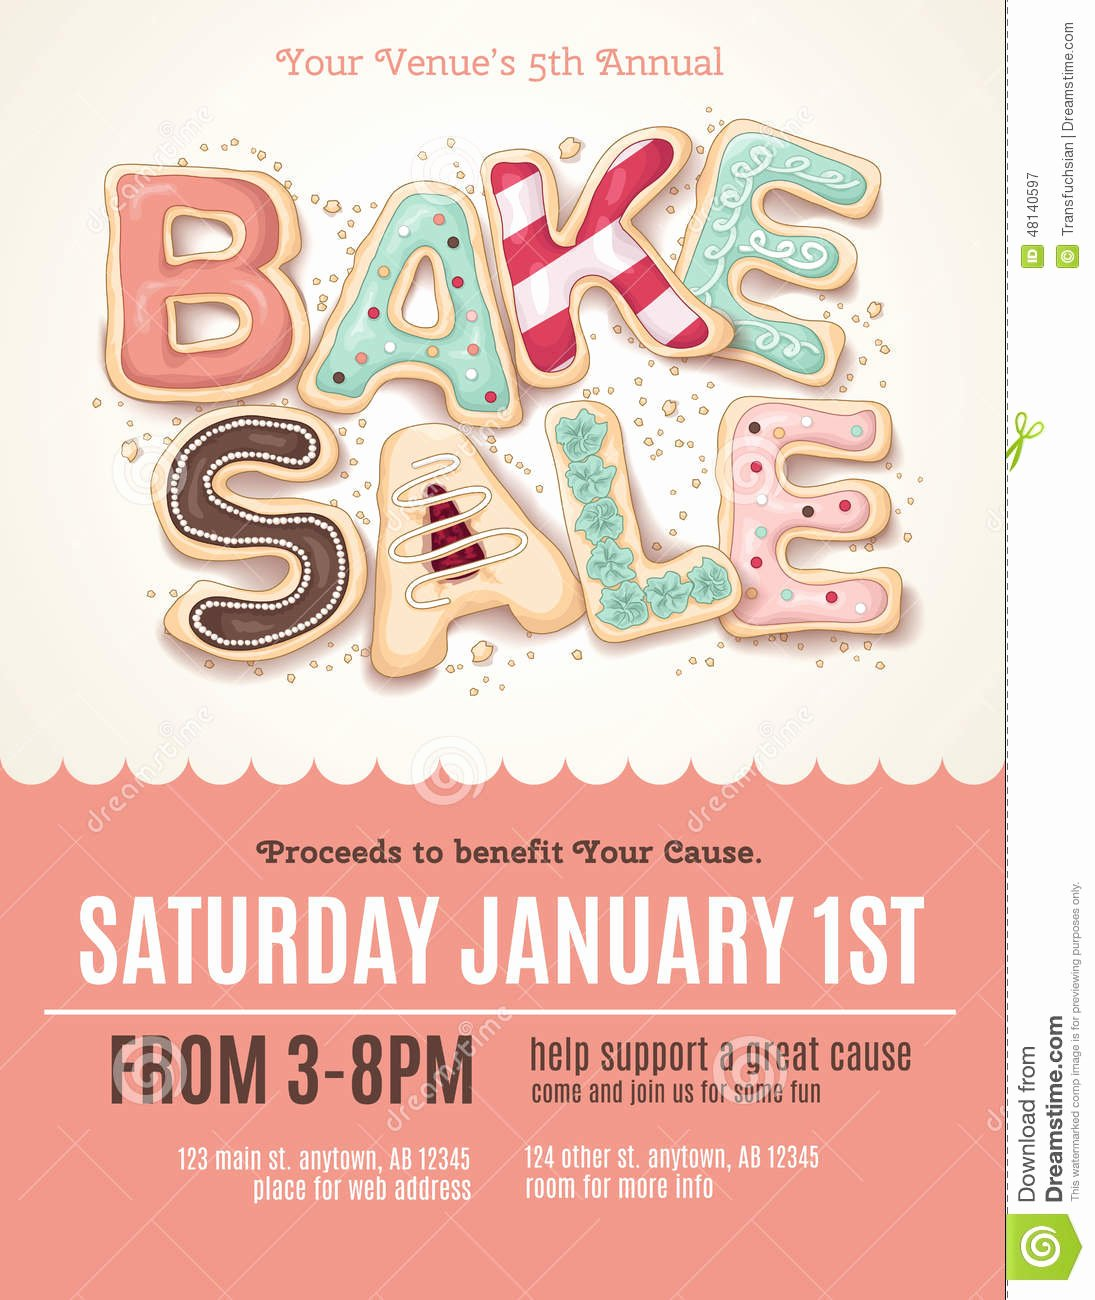 Free Bake Sale Template New Fun Cookie Bake Sale Flyer Template Stock Vector